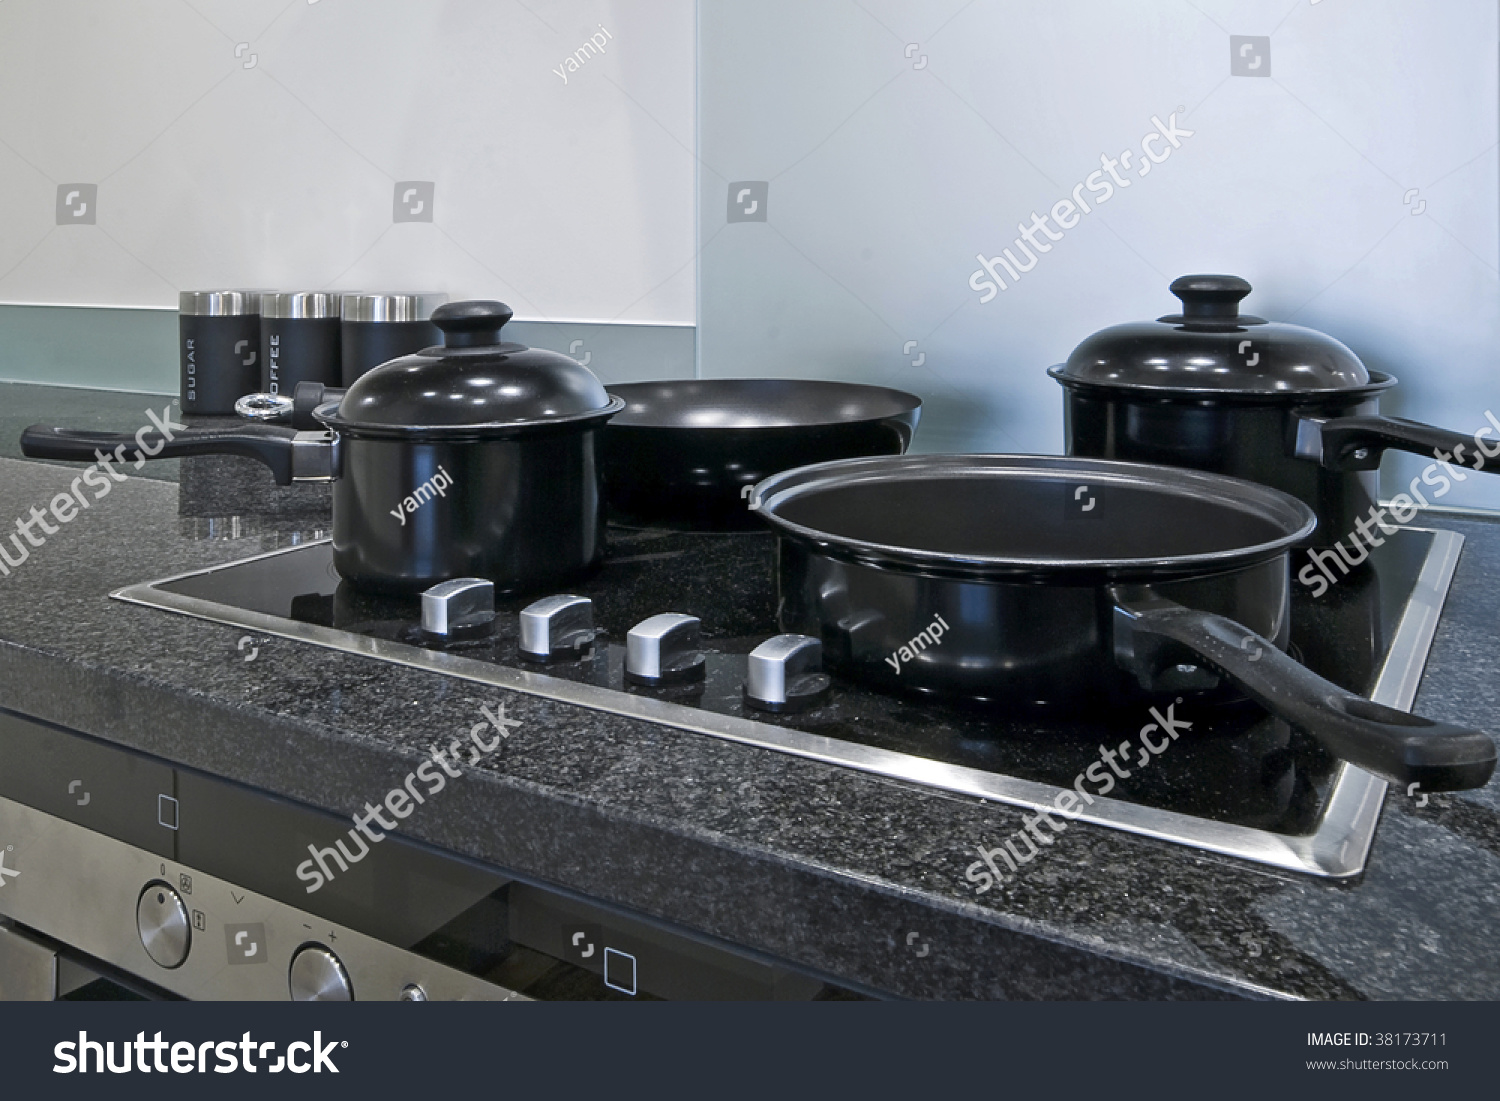 Four Ring Induction Hob